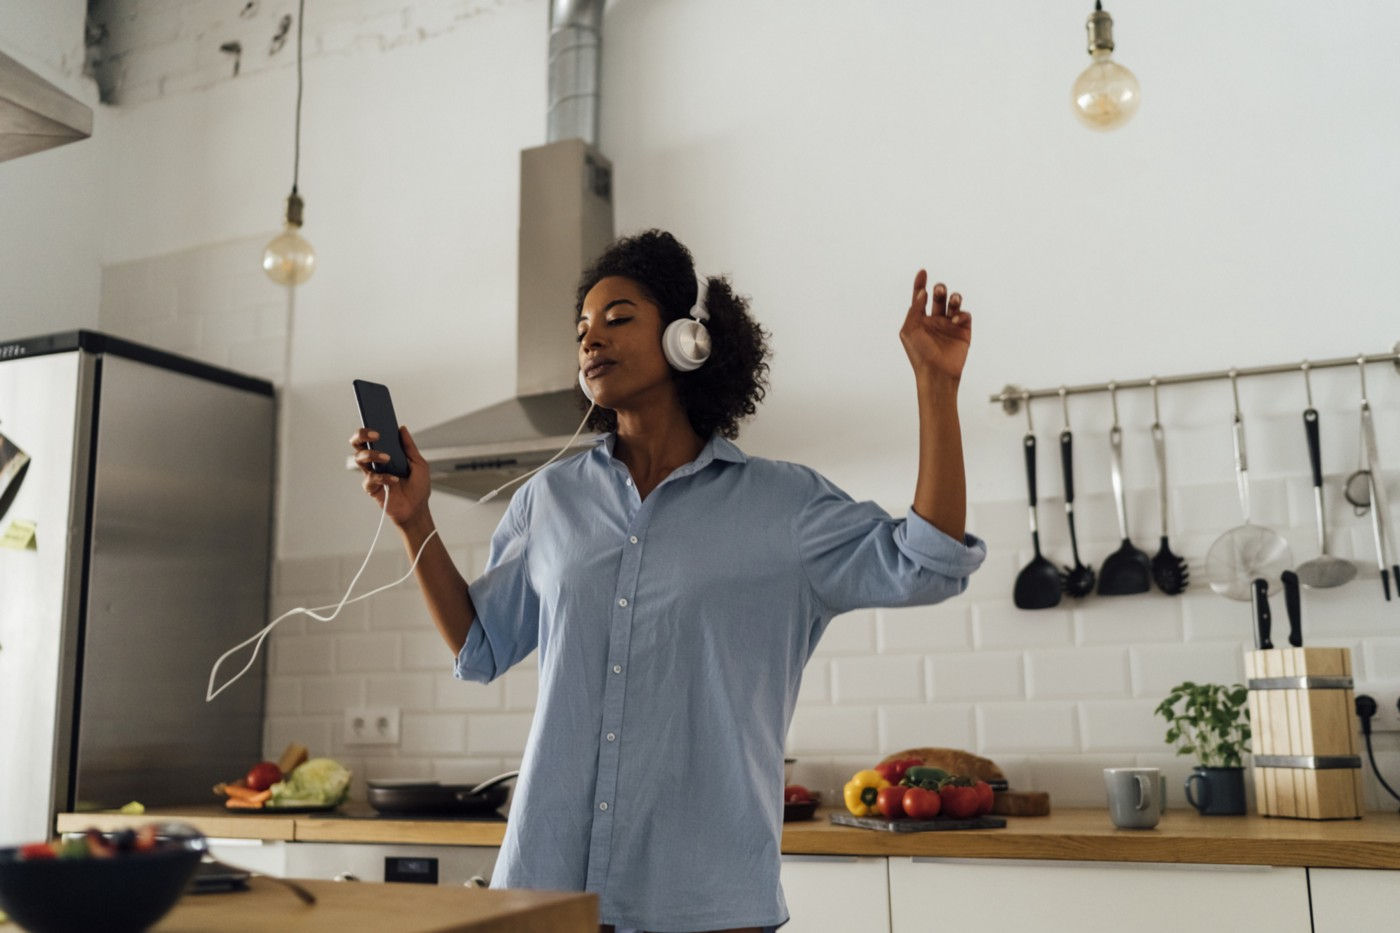 A photo of a black woman listening to music on headphones in her kitchen. She is feeling herself.